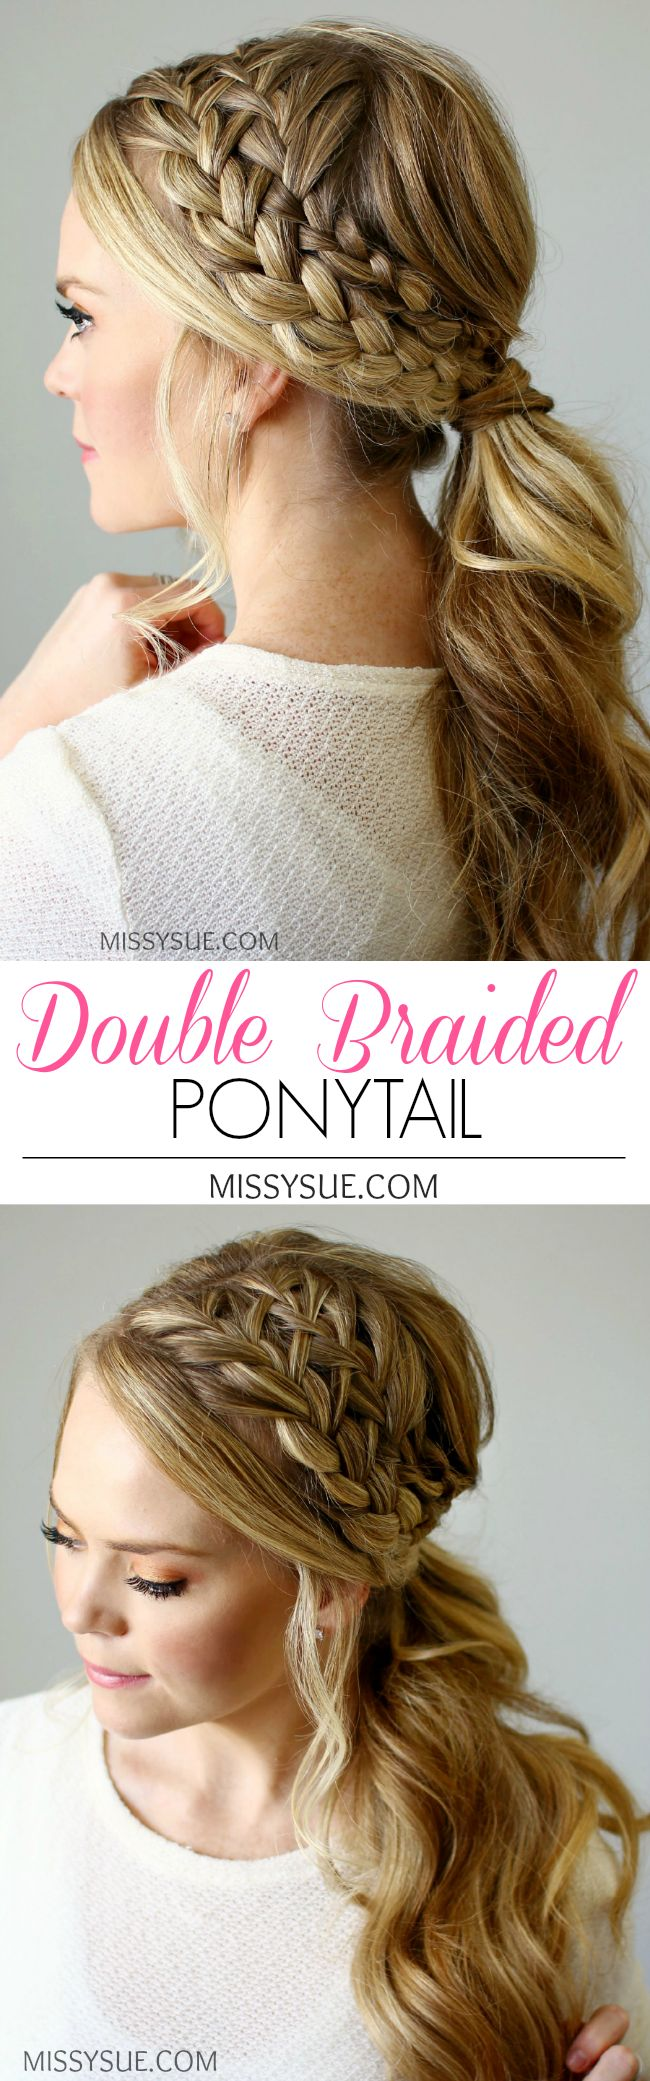 Enjoyable 1000 Ideas About French Braided Ponytail On Pinterest Braid Short Hairstyles For Black Women Fulllsitofus